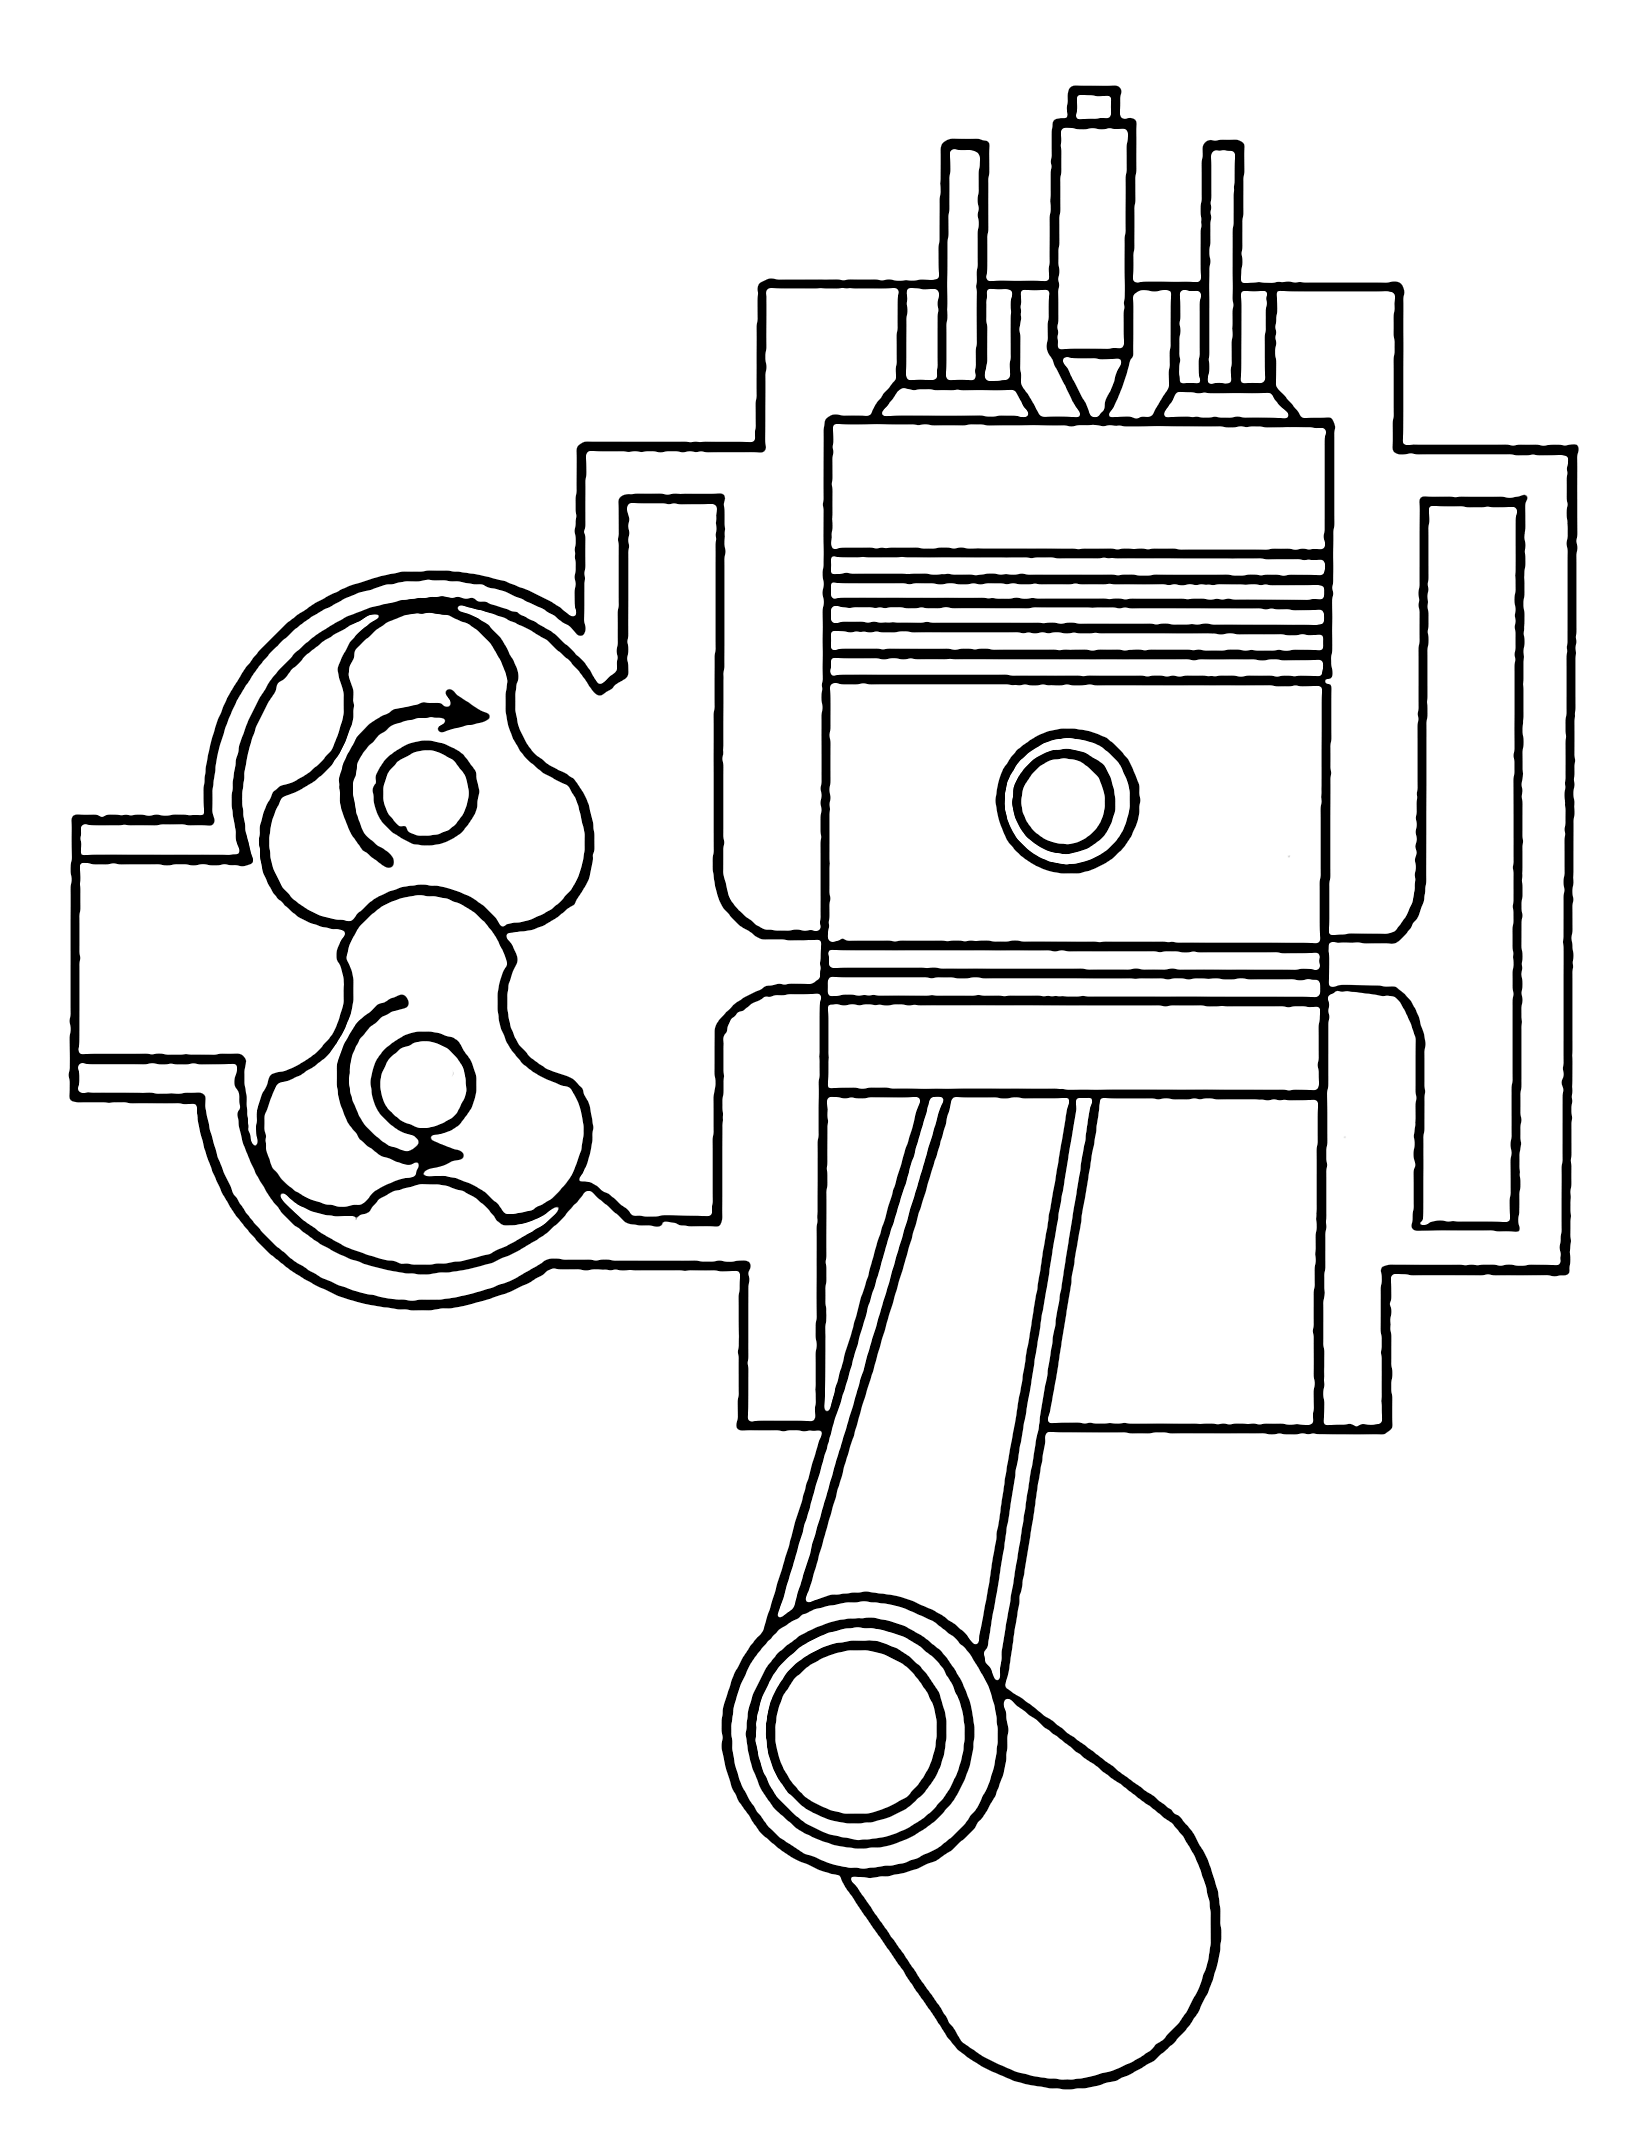 Six Stroke Diesel Engine In This moreover Cycle Of A 4 Stroke Engine  pression moreover Engines Heat Pumps as well 4 Stroke Basic Motorcycle Wiring Diagram moreover Otto Cycle Strokes Thermodynamic Processes P V And T S Diagram And Efficiency. on otto cycle engine diagram